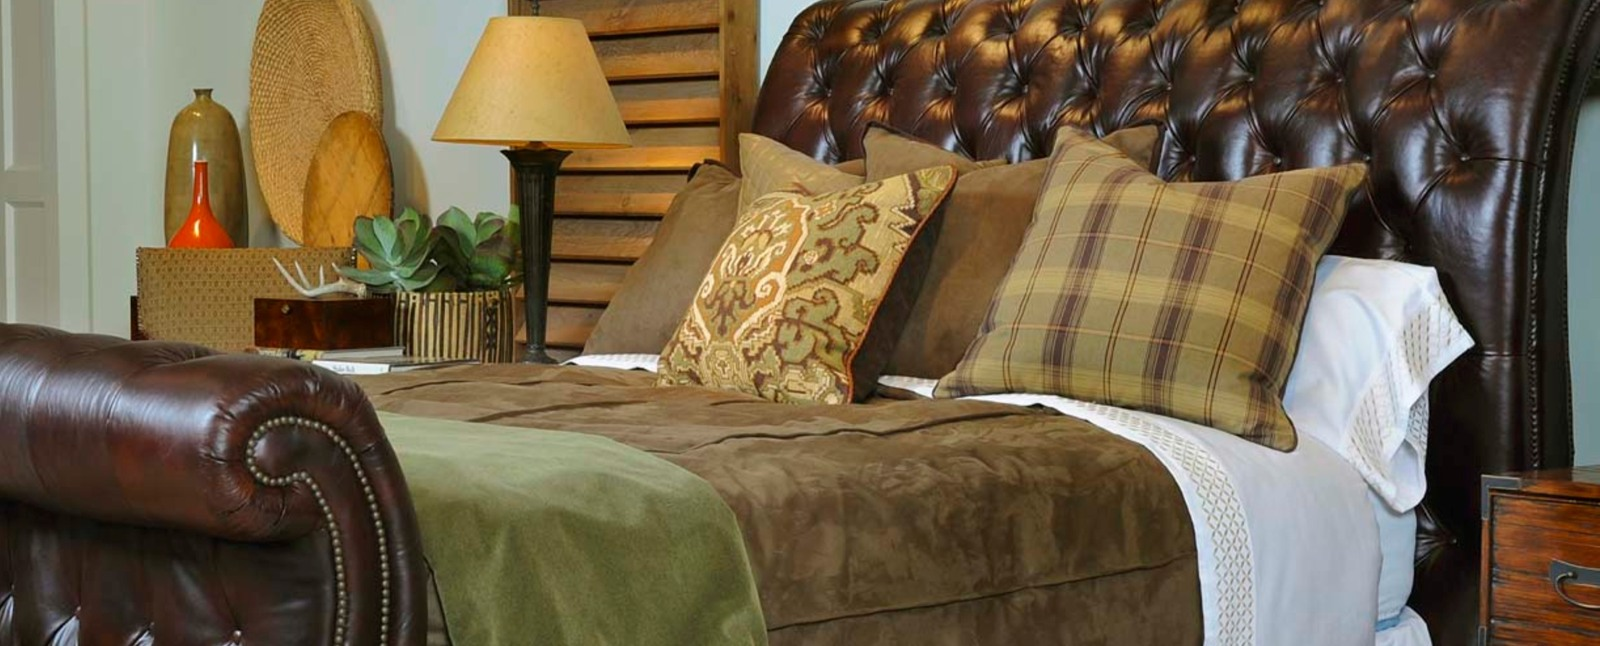 bedding sets comforters style comforter master untitled combining bedspread create enhances romantic made the ourcompany ottawa a comfortable copy custom any retreat bedroom beautiful and in by of custombedding completes duvet